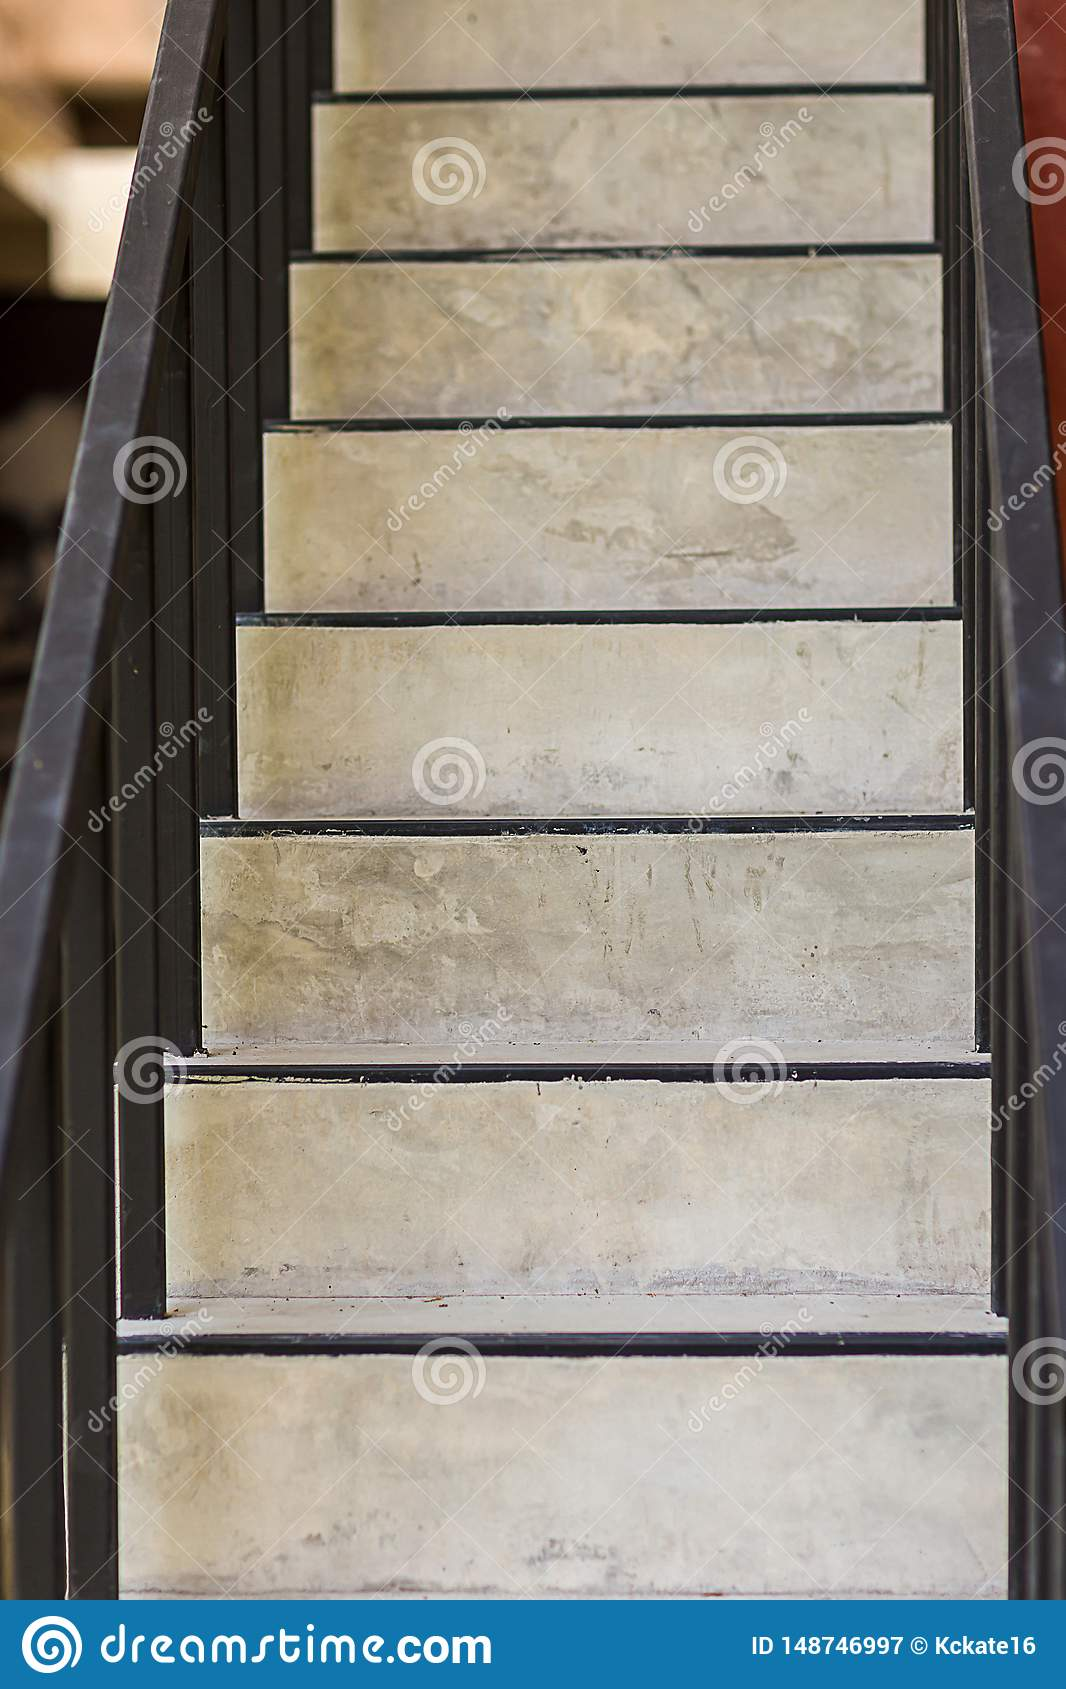 concrete steps.ladder texture.Cement concrete stair.Abstract modern concrete stairs to building. step of stairs for background.